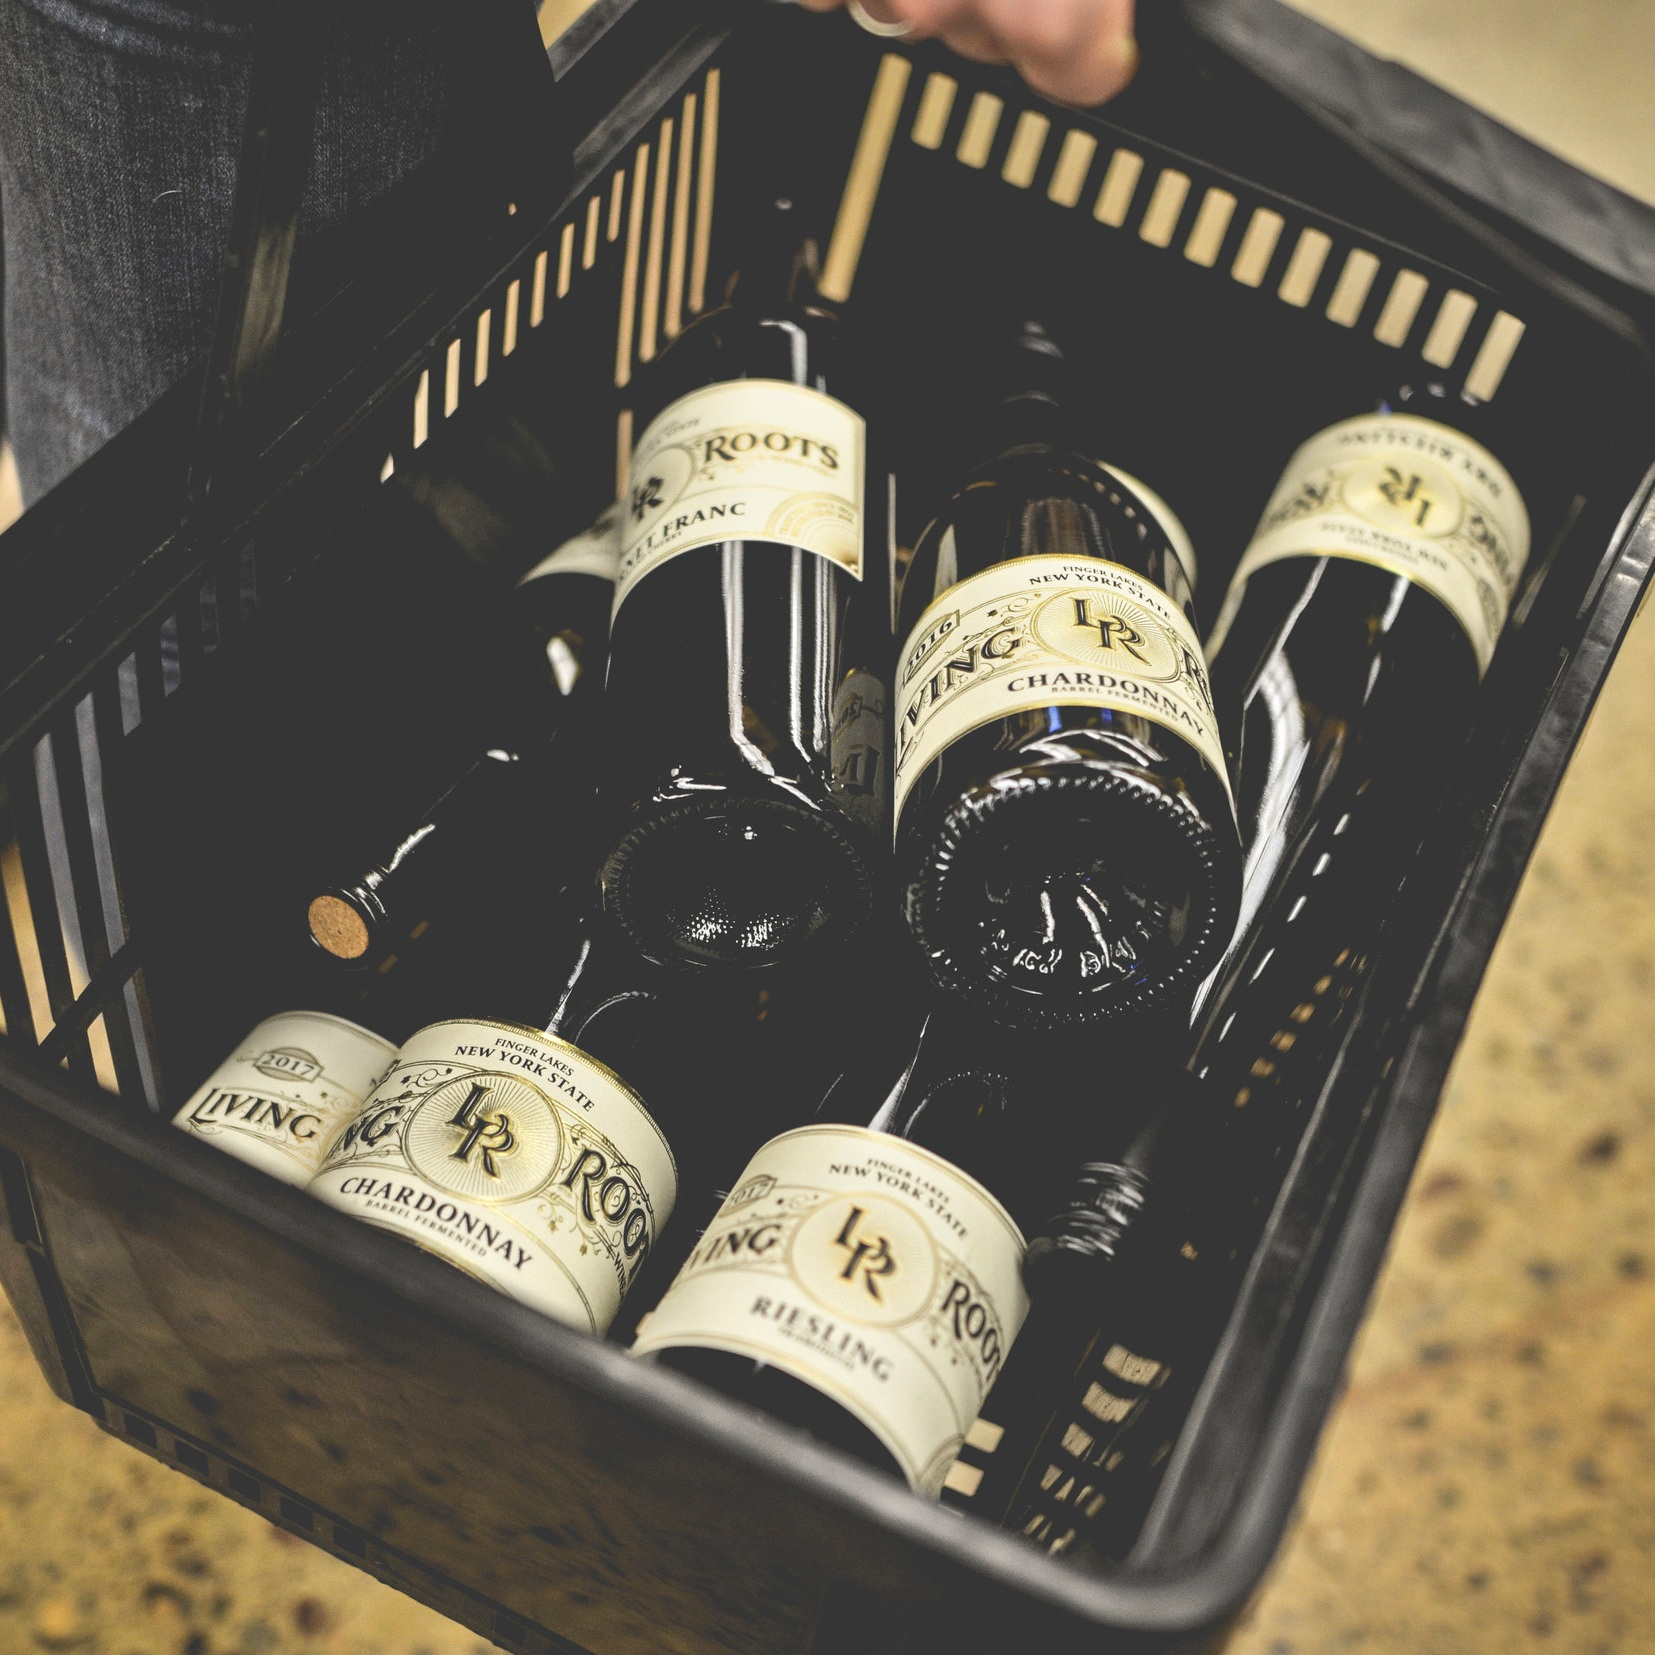 Wine bottles in store carry basket